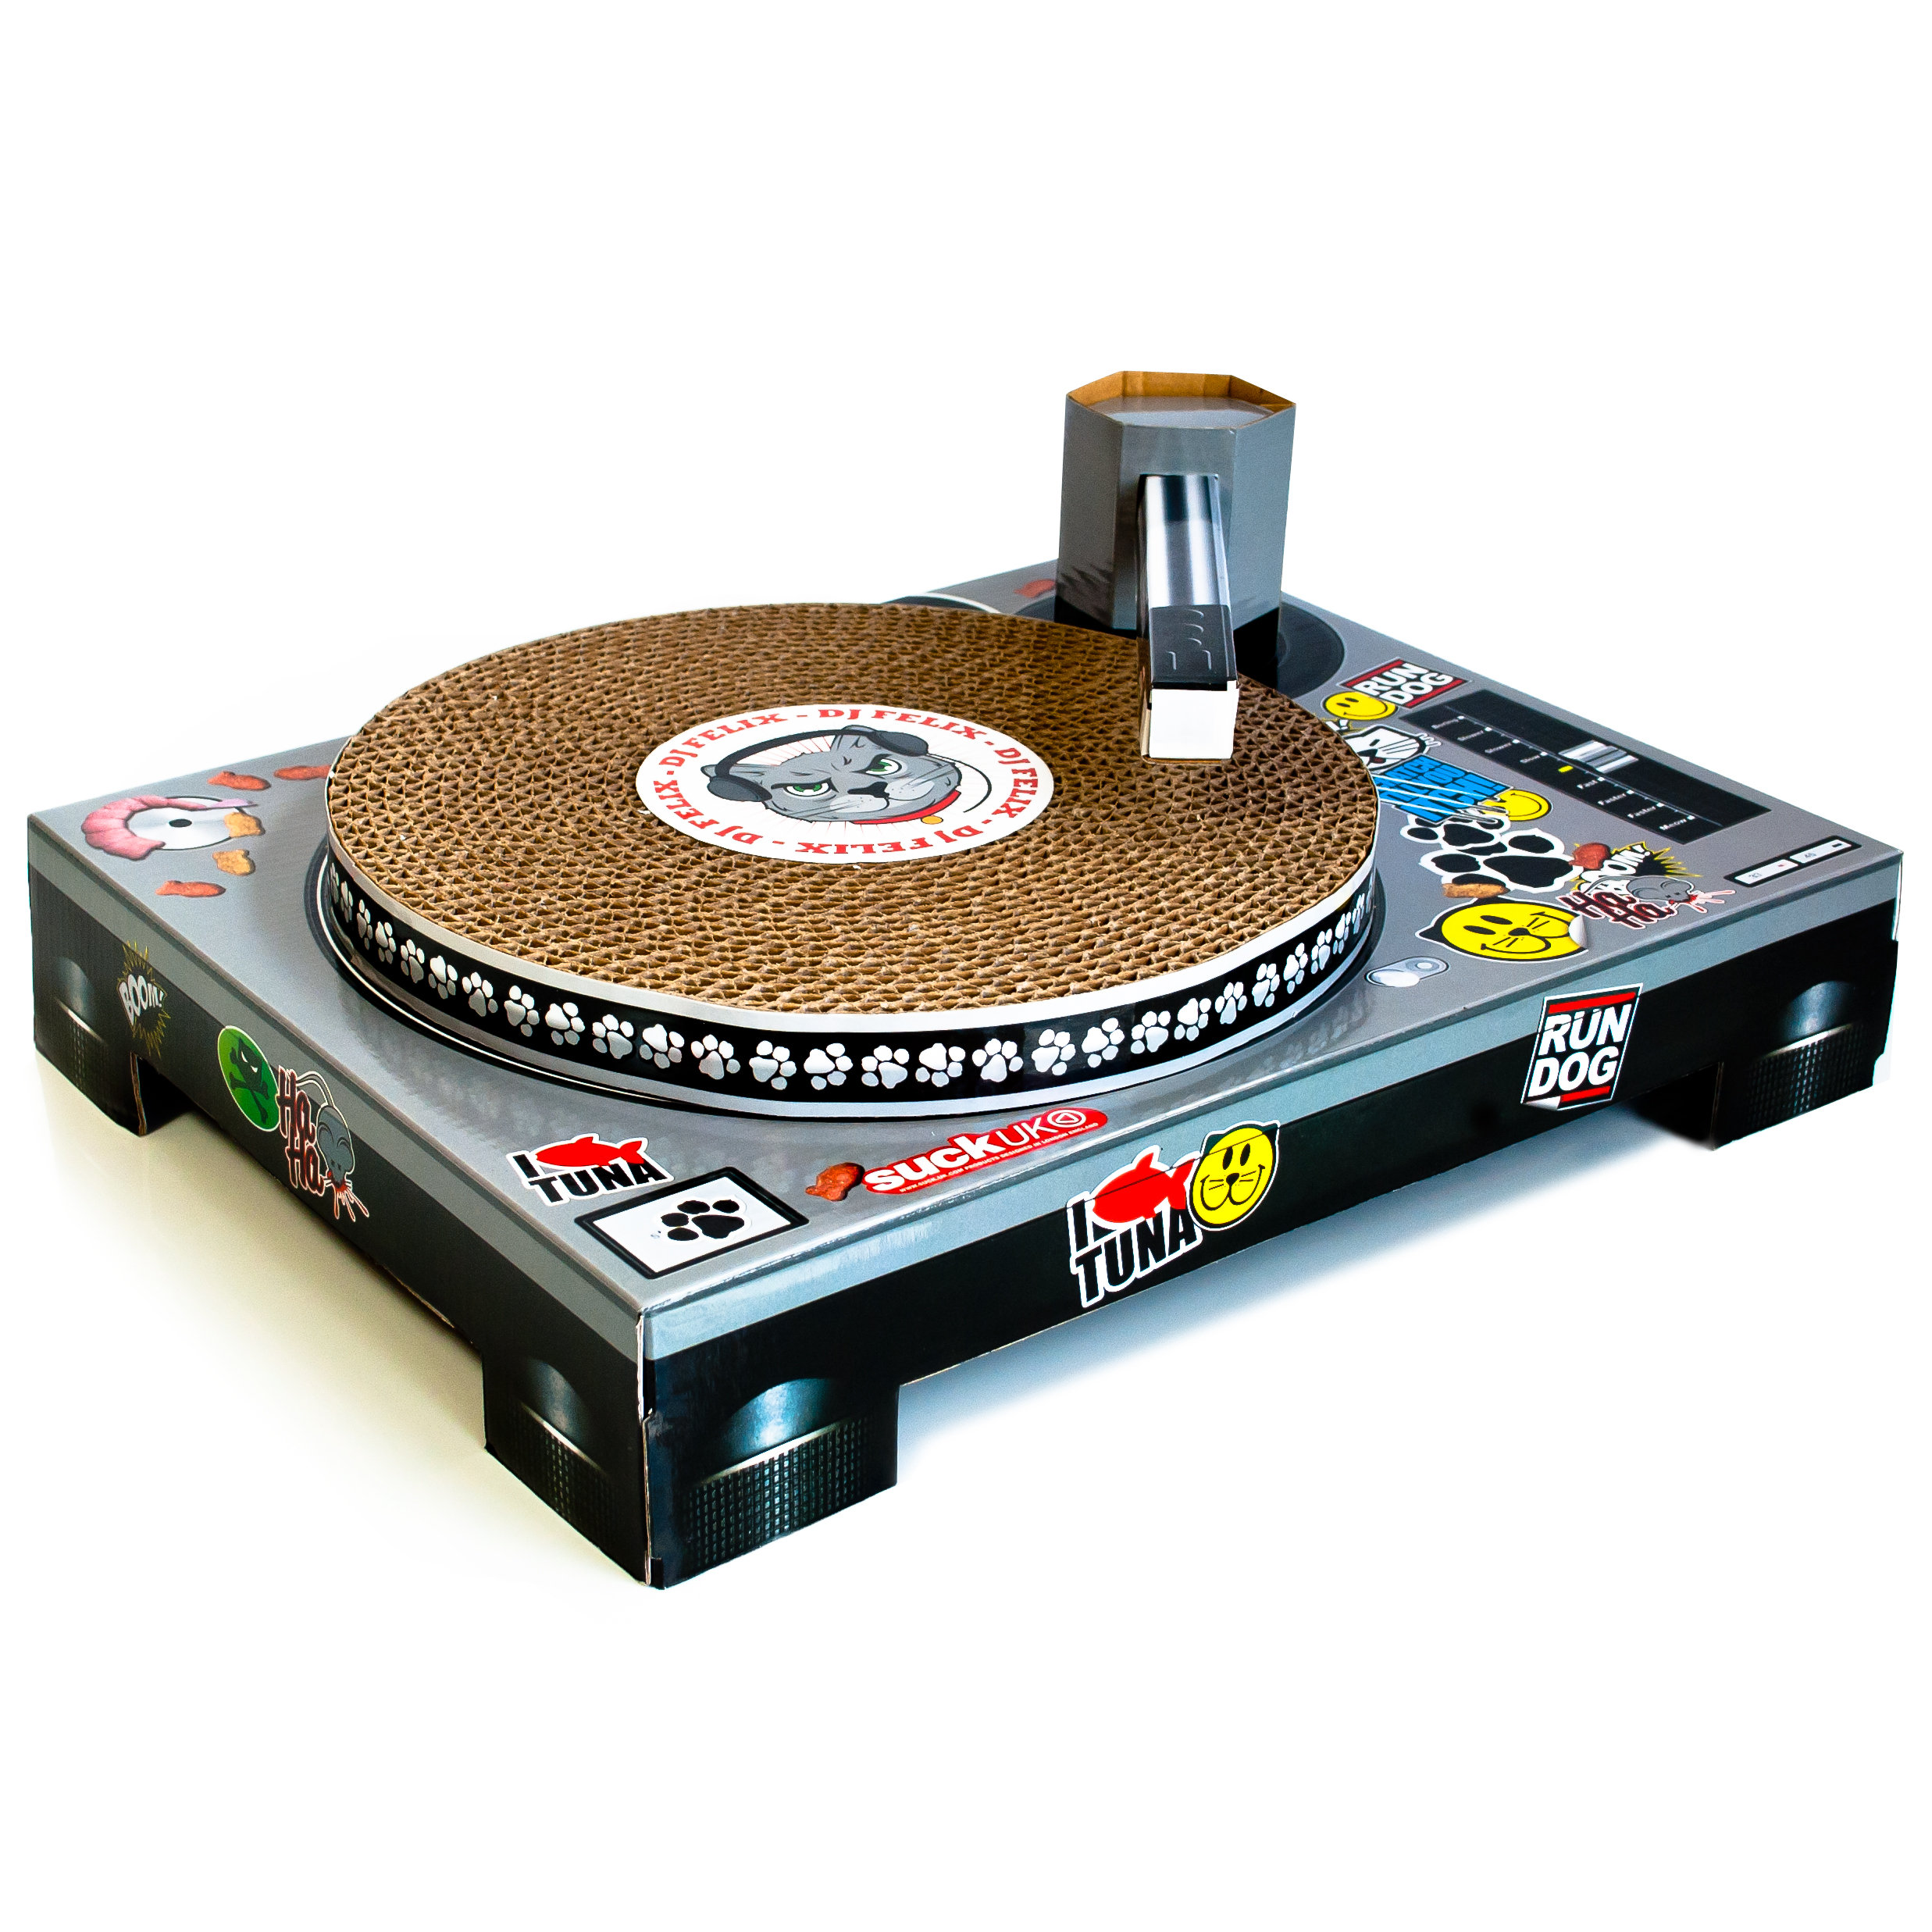 Cat Scratch Turntable Content Gallery : Cardboard DJ turntable ...